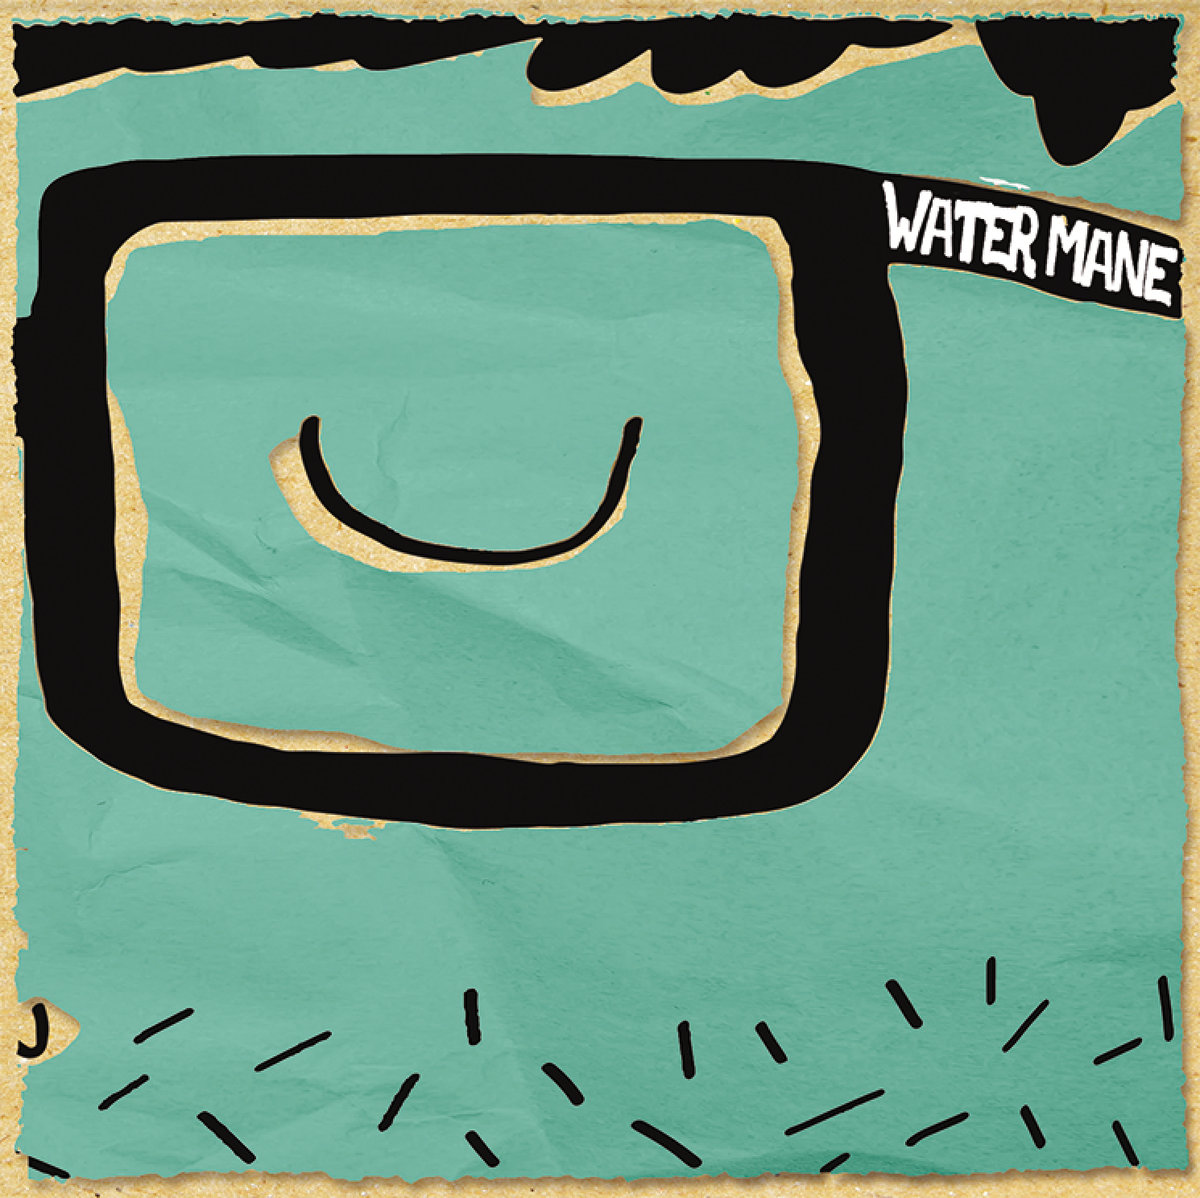 Water Mane - Greetings from the Basements